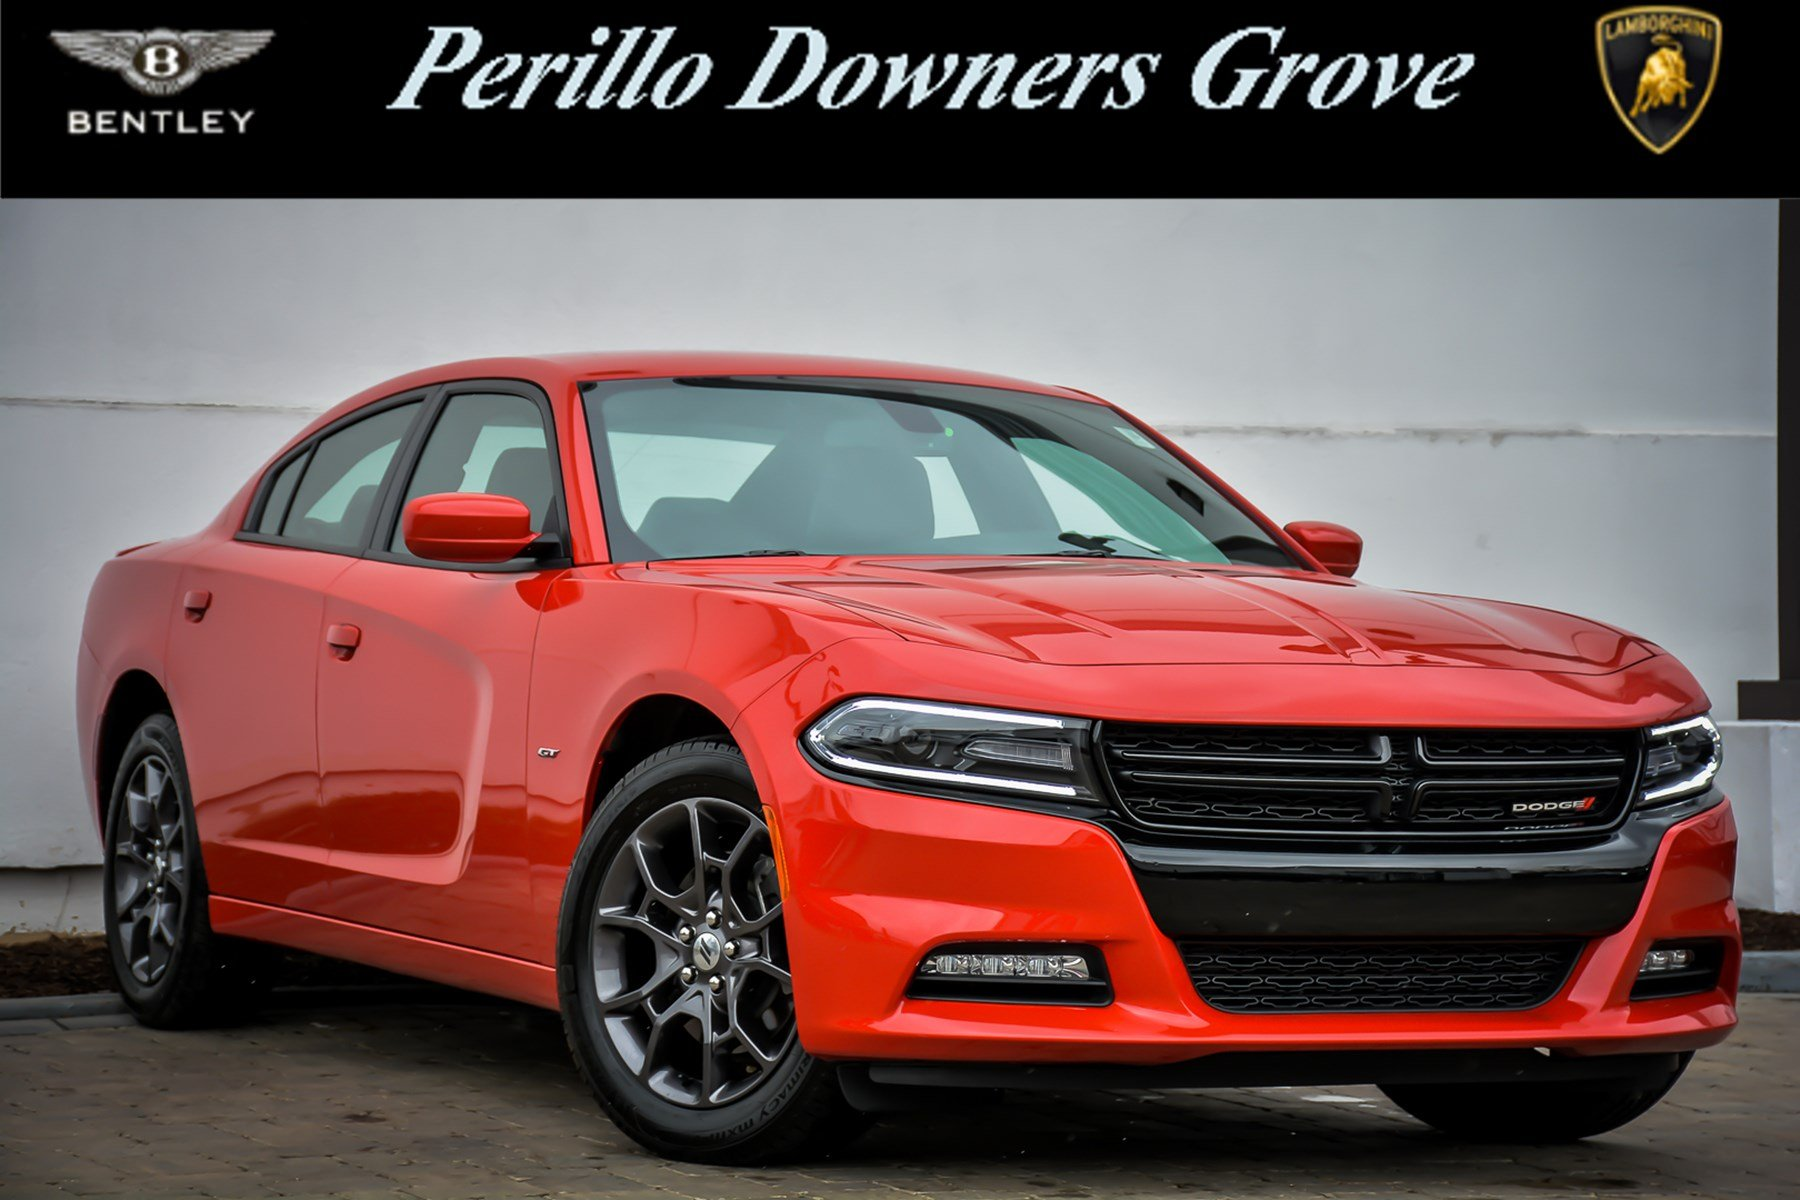 pre owned 2018 dodge charger gt plus 4dr car in downers grove dg1122 perillo downers grove. Black Bedroom Furniture Sets. Home Design Ideas